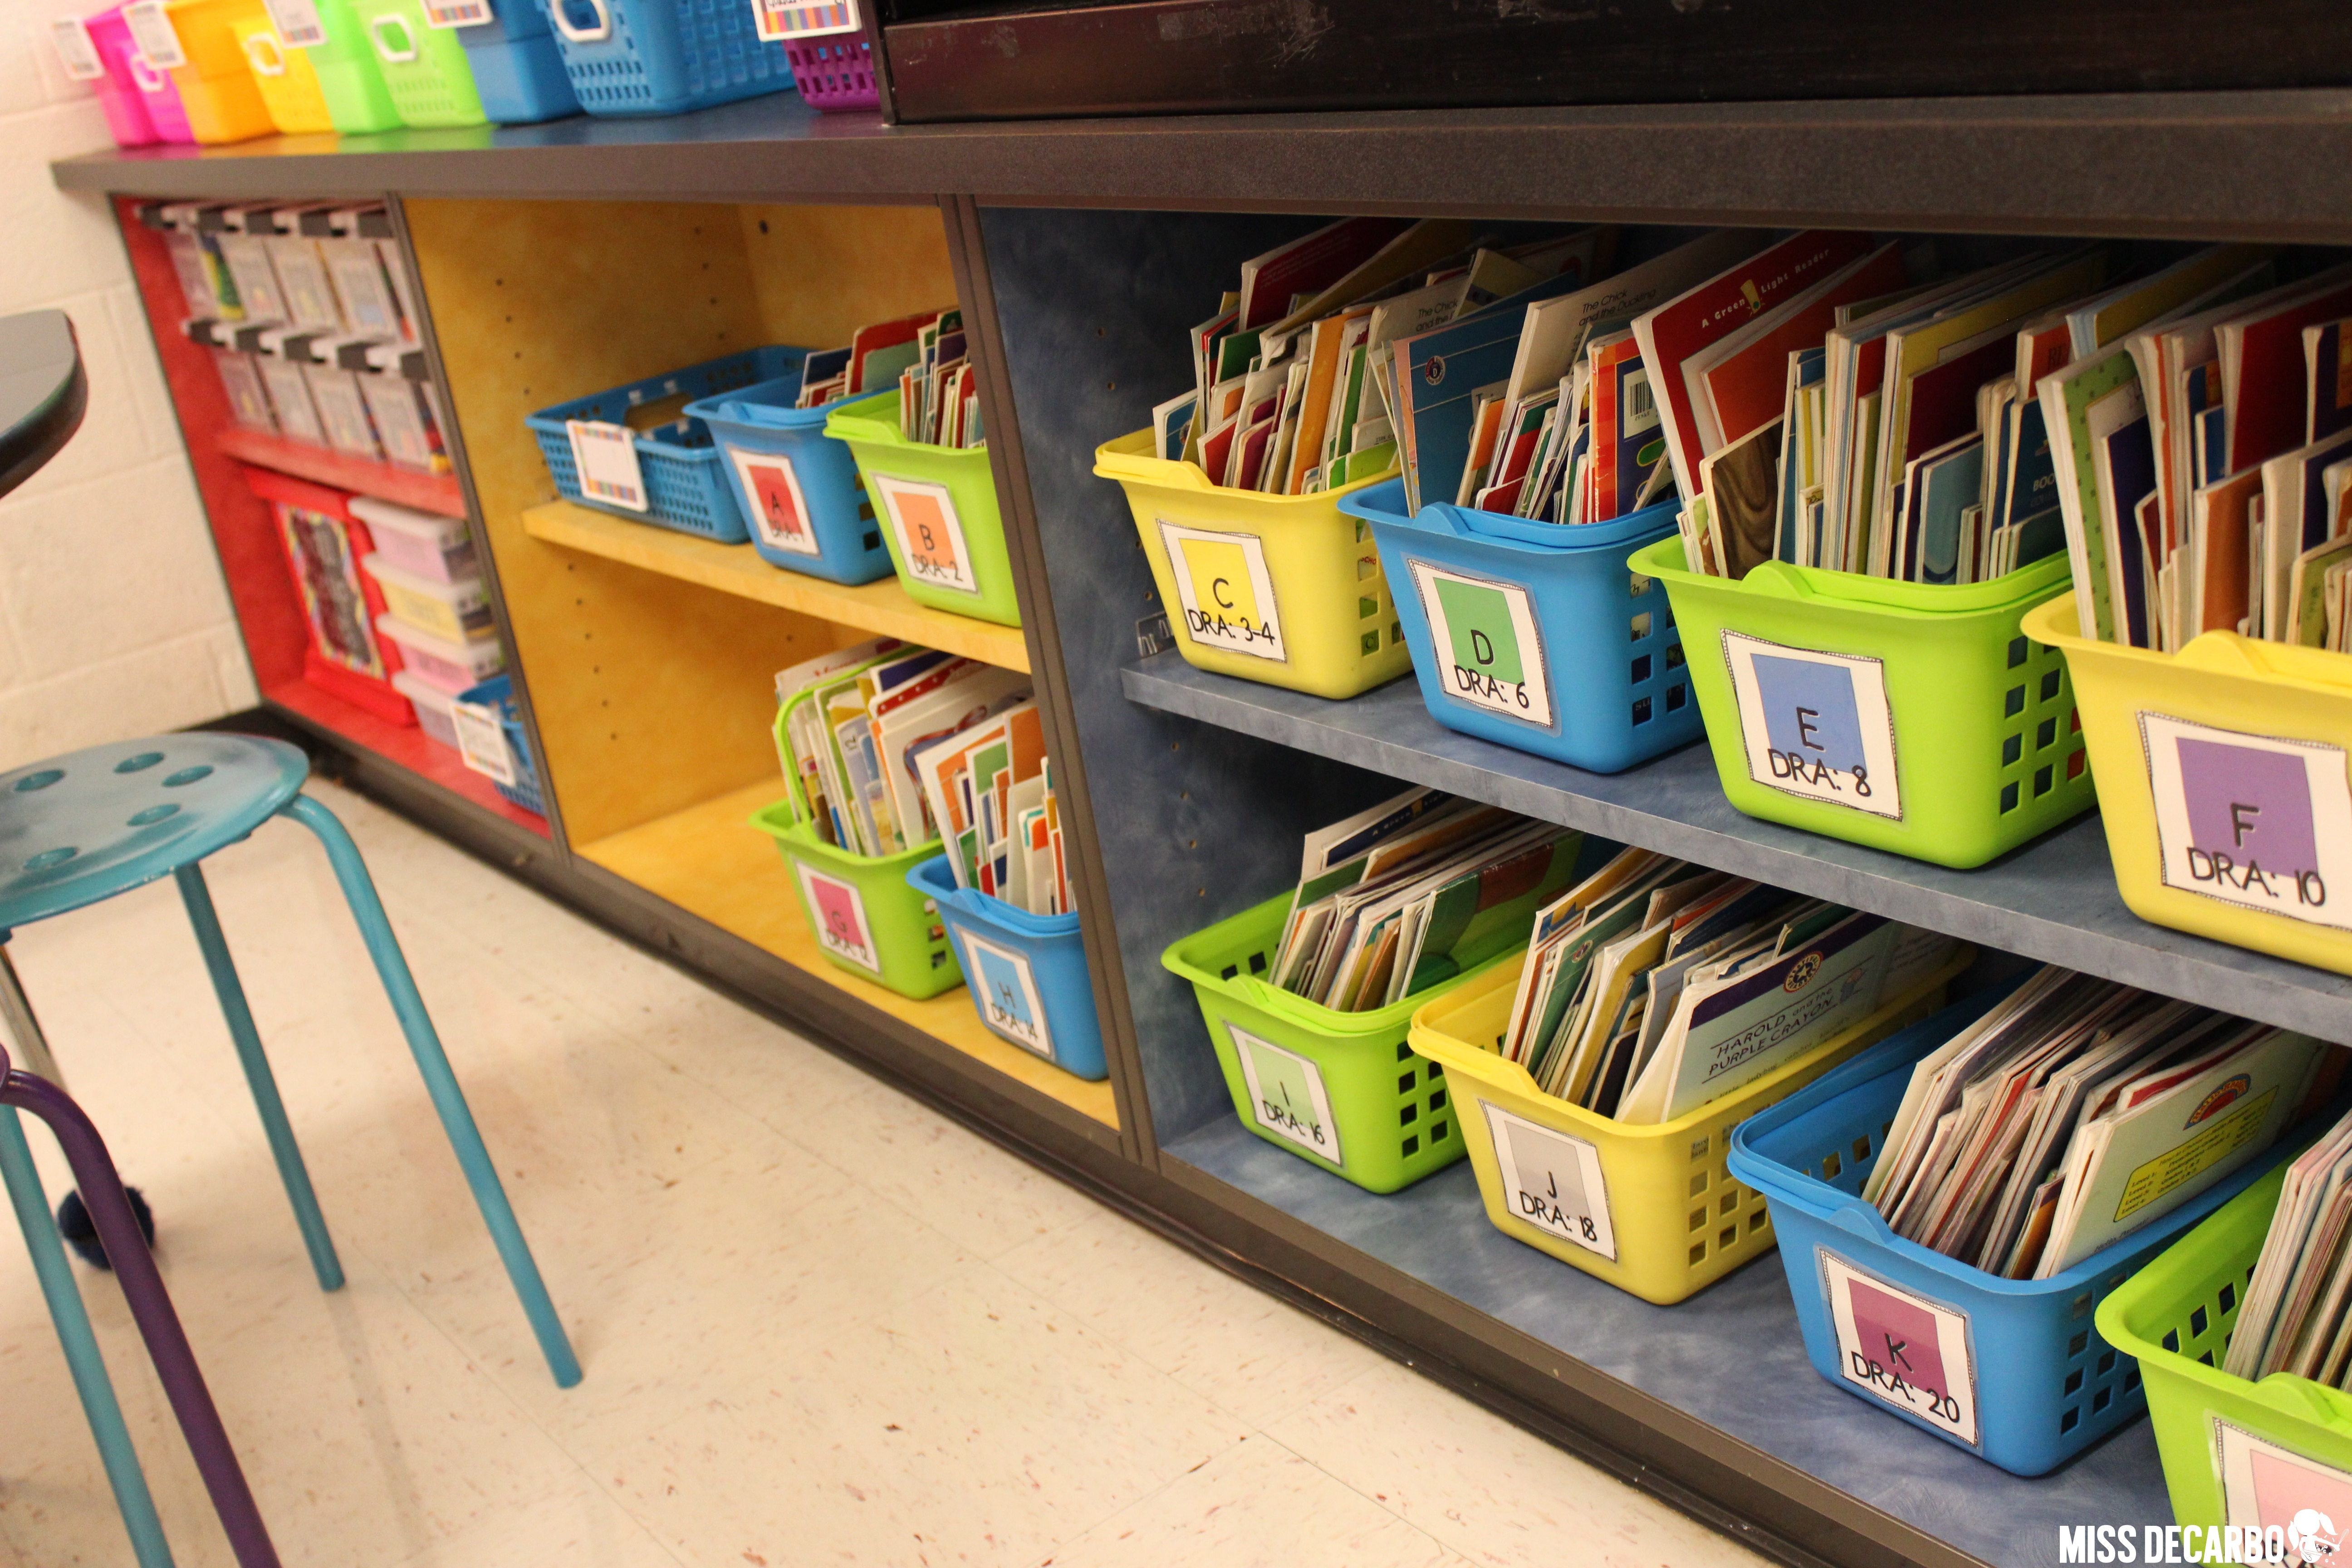 Here's a picture of the leveled library section of my classroom. Check out why I stopped using traditional reading logs in my classroom, and learn how I renovated the reading log to make it intentional for comprehension and nightly reading.